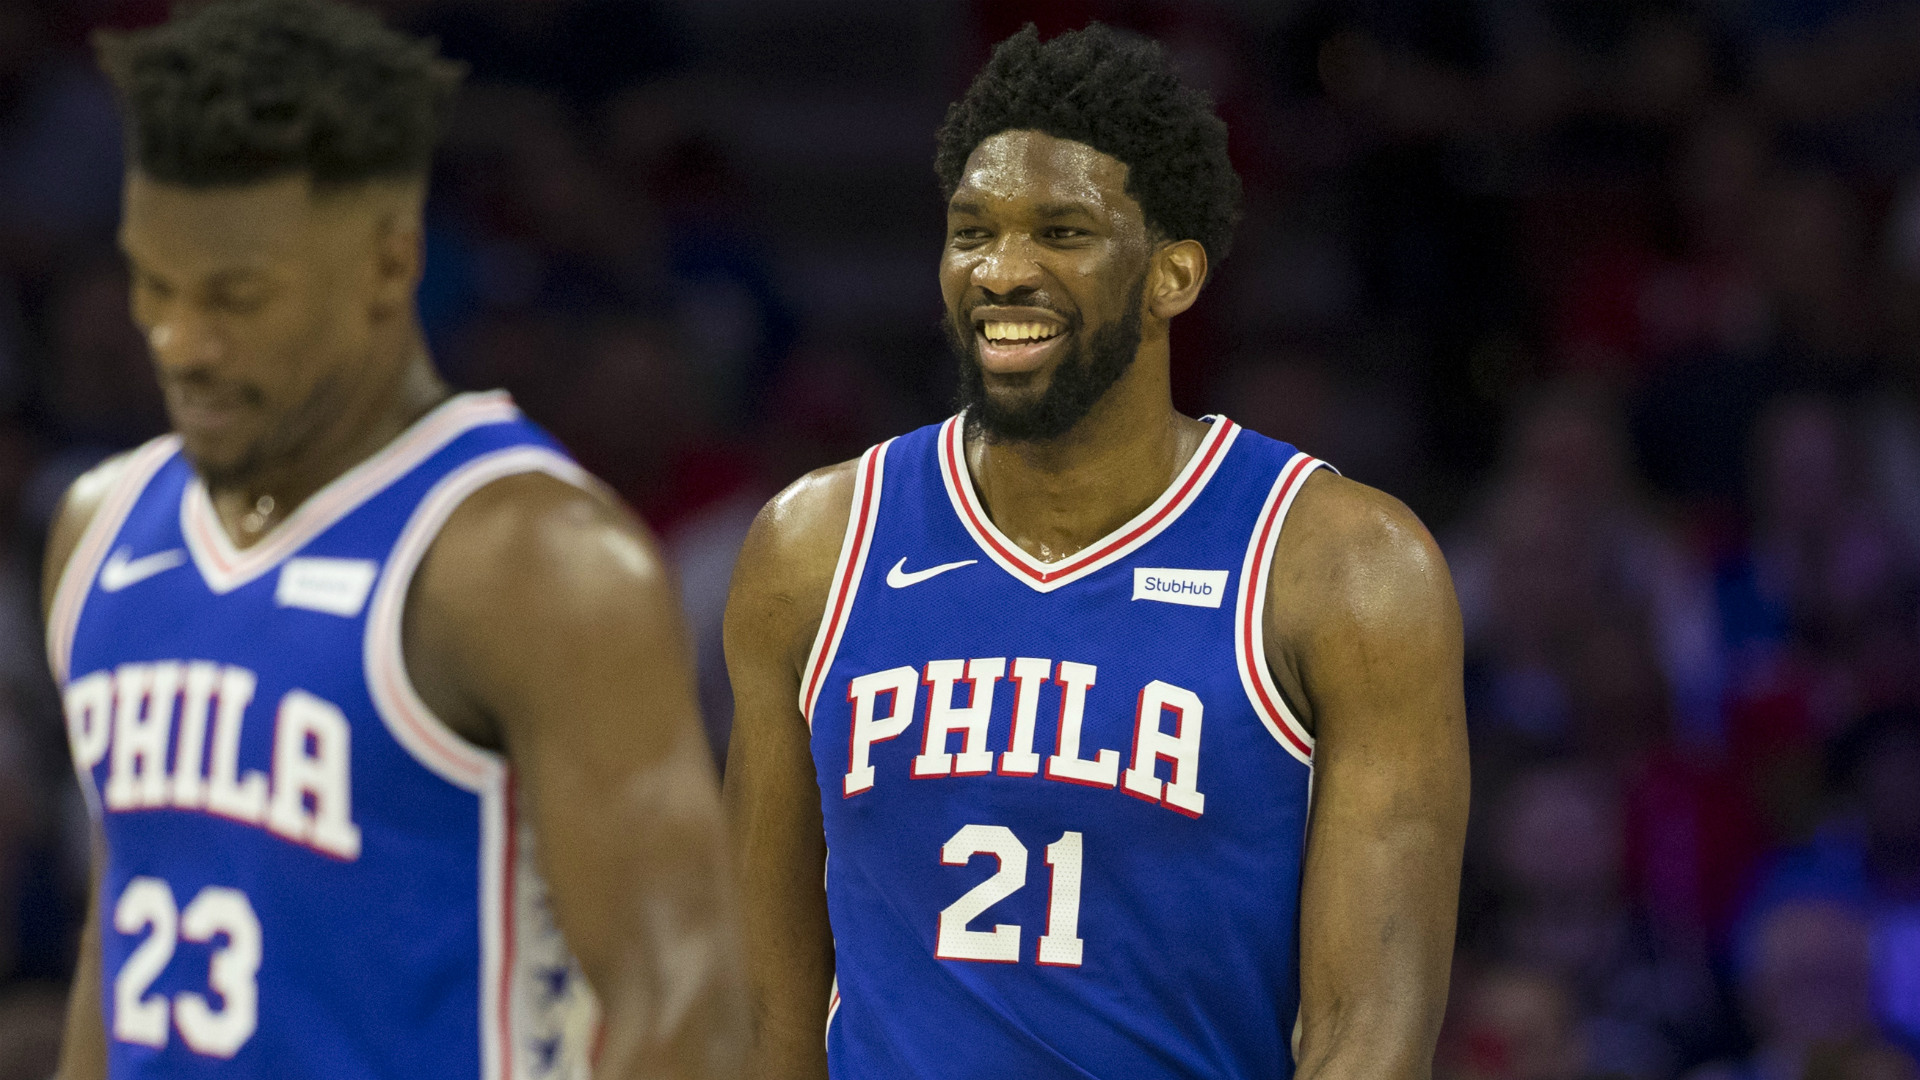 NBA playoffs 2019: Joel Embiid says 76ers 'can win it all